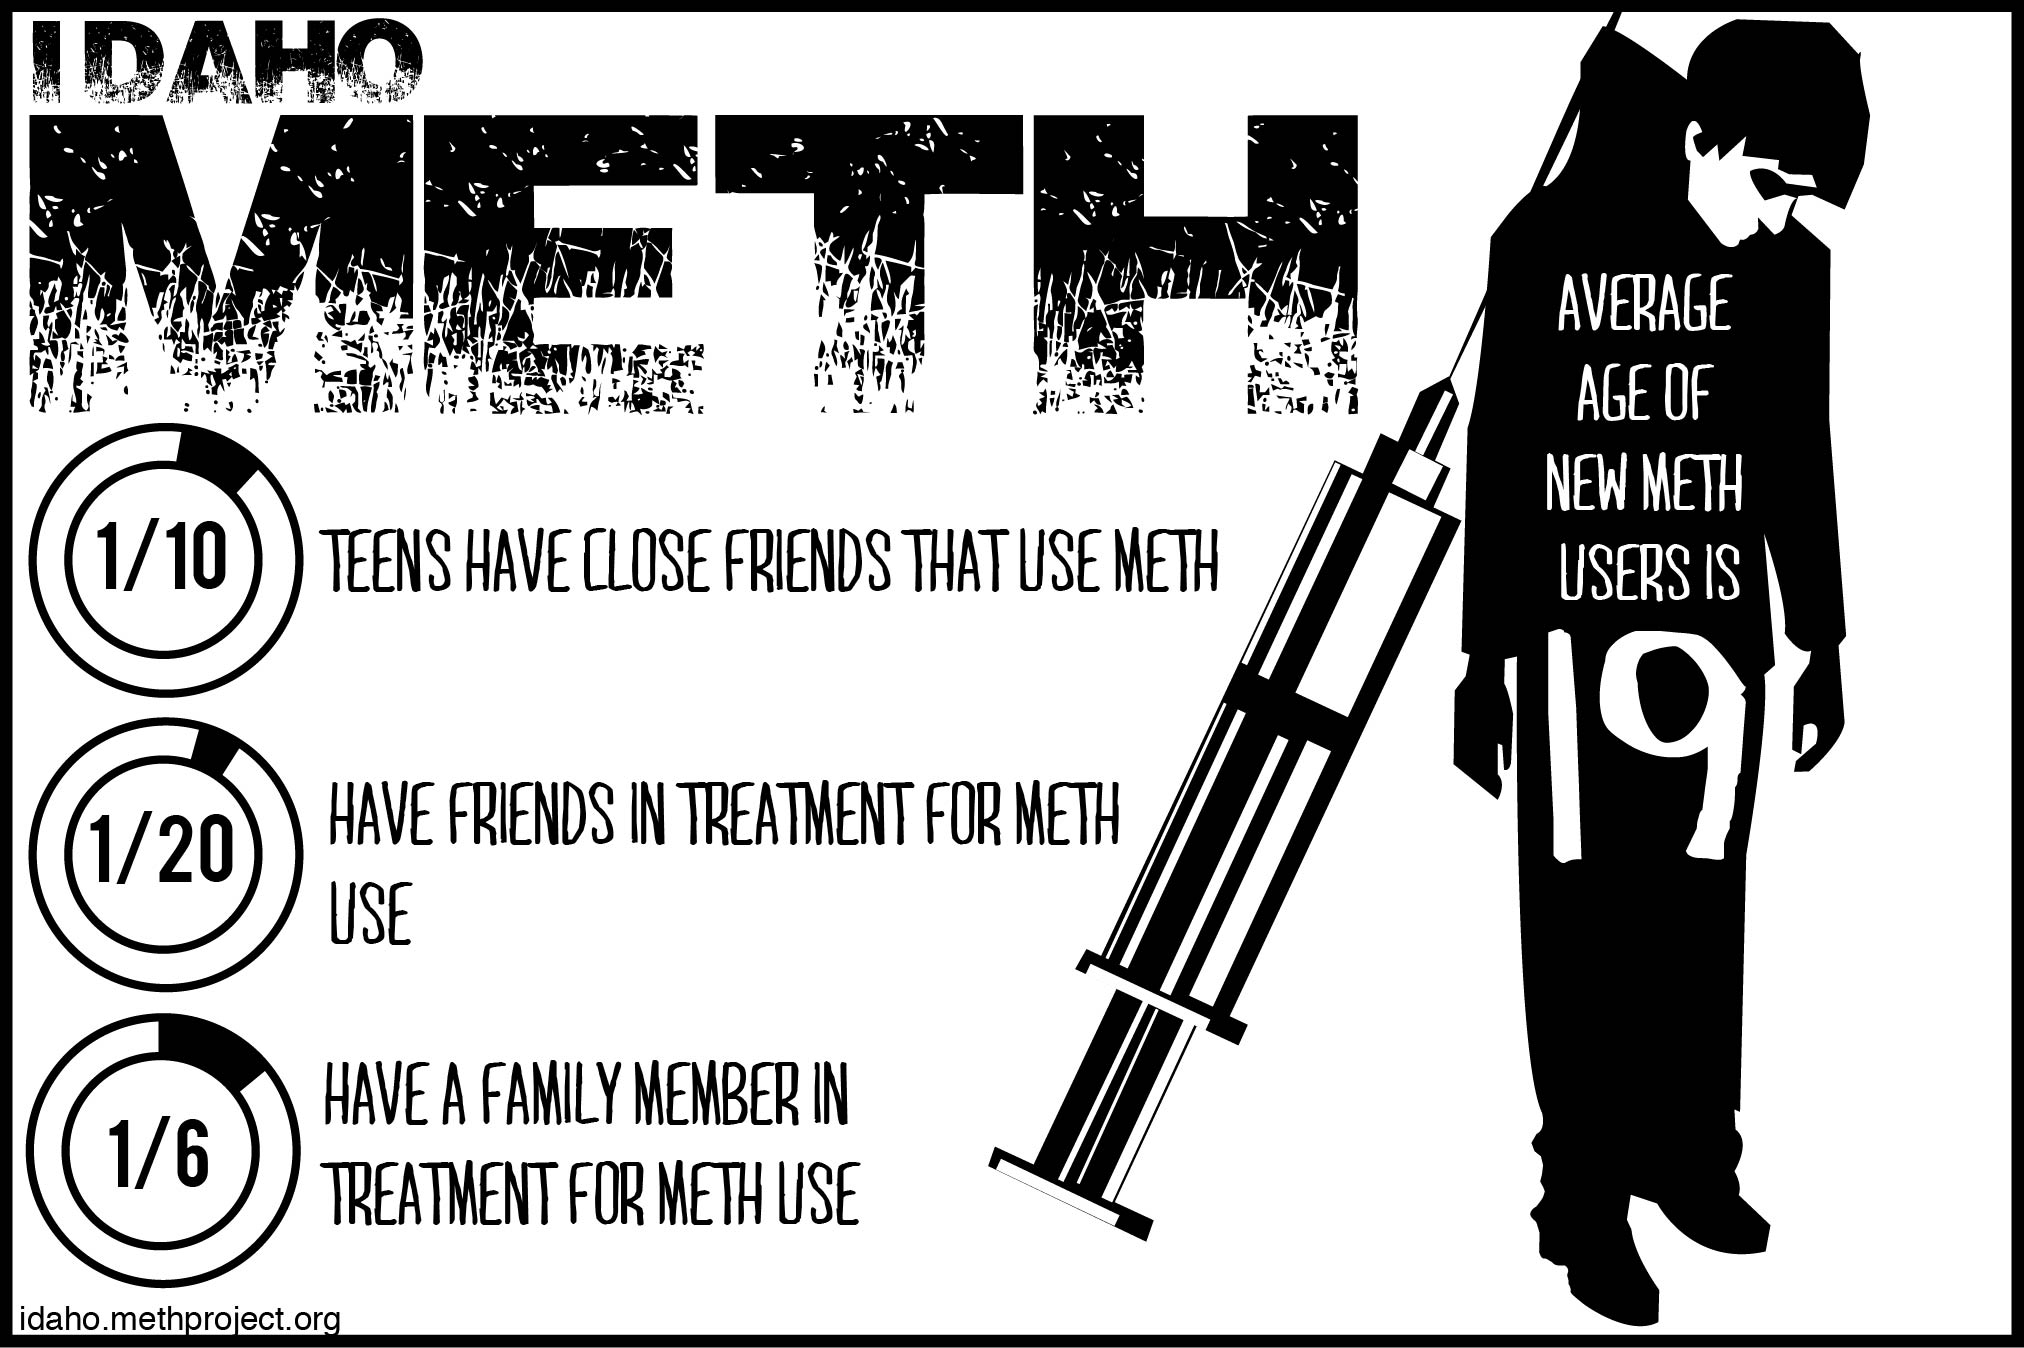 Facts About Crystal Meth Overdoses